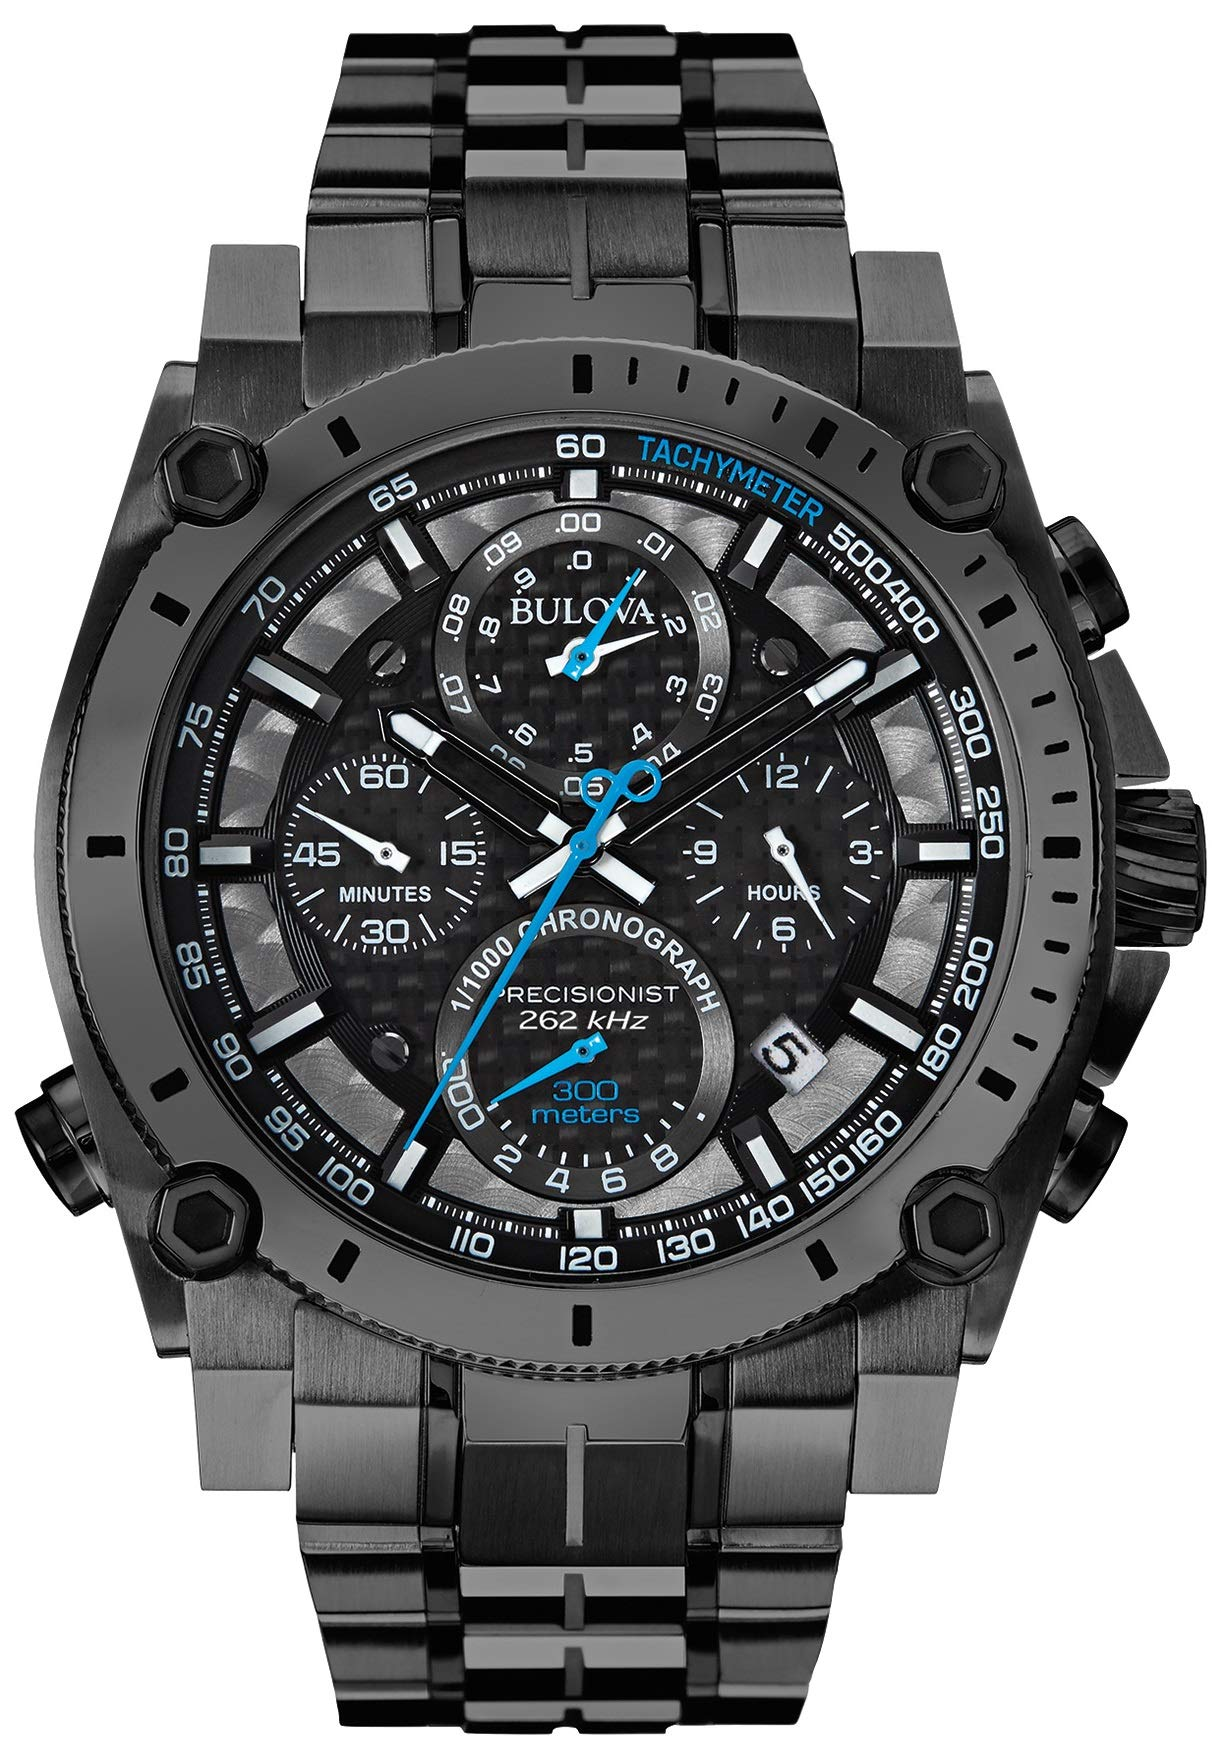 Bulova Precisionist Chronograph Men's UHF Watch with Black Dial and Stainless Steel Bracelet